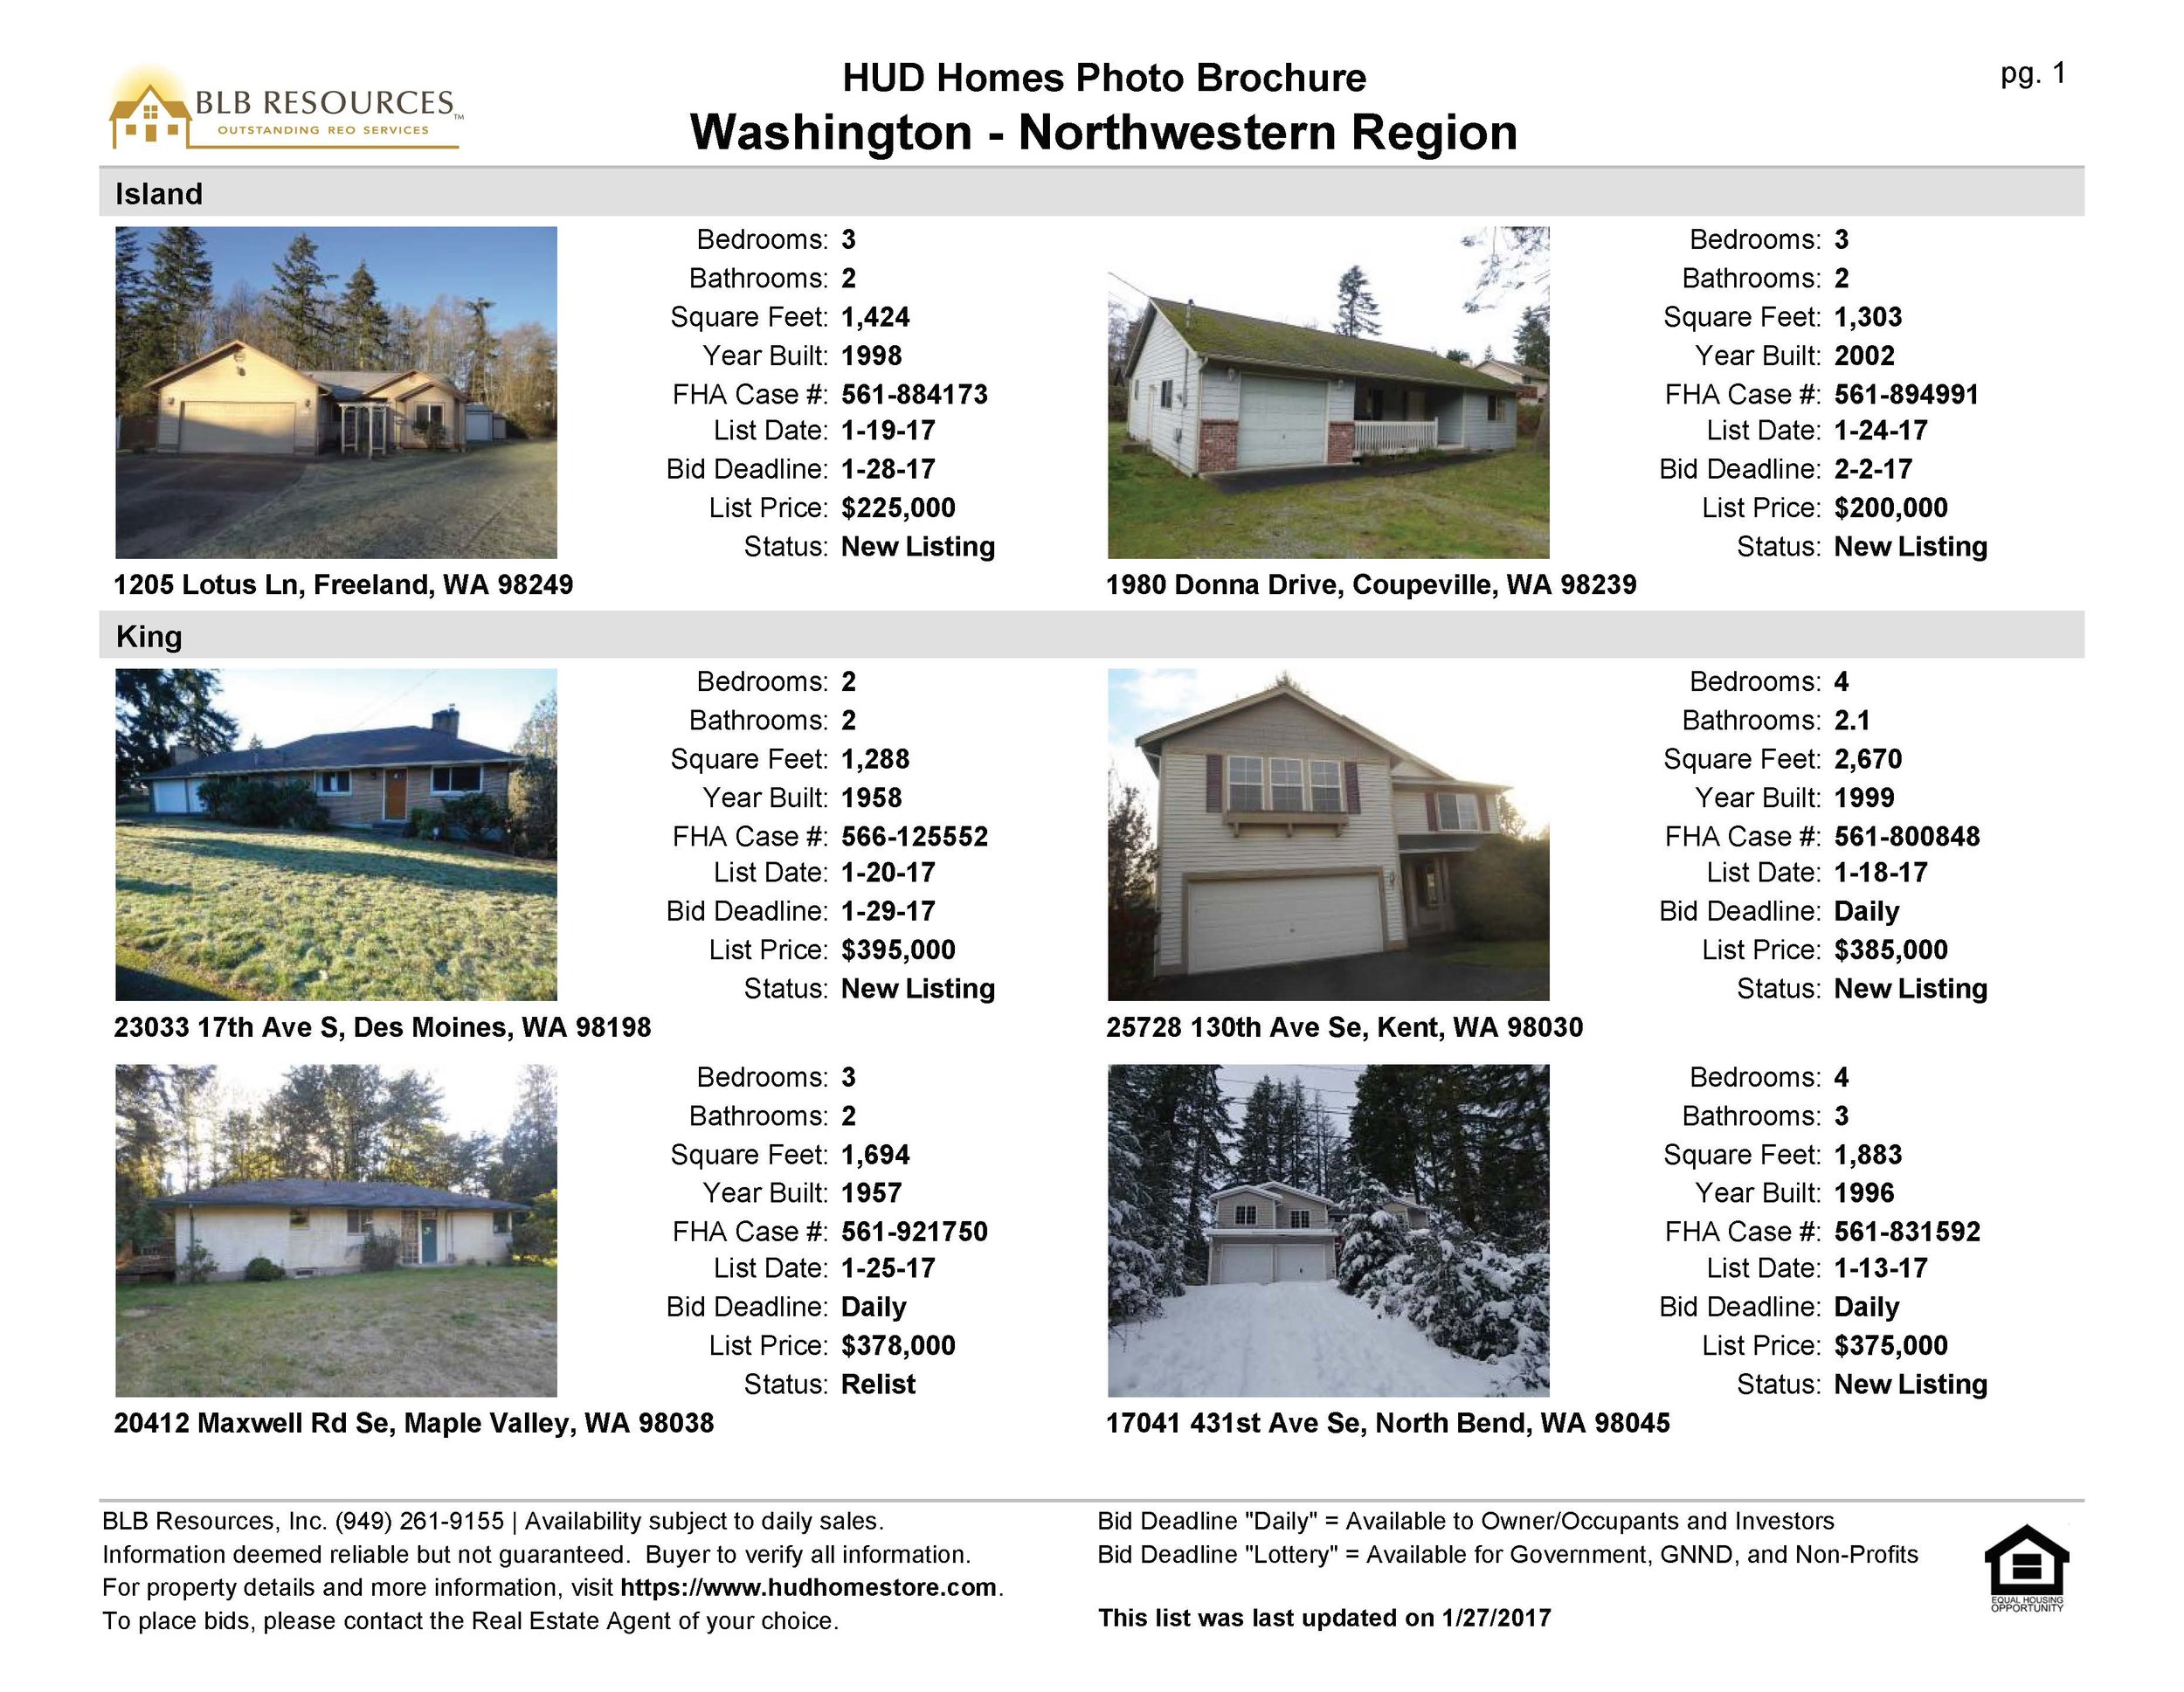 Sample: HUD Photo List Brochure